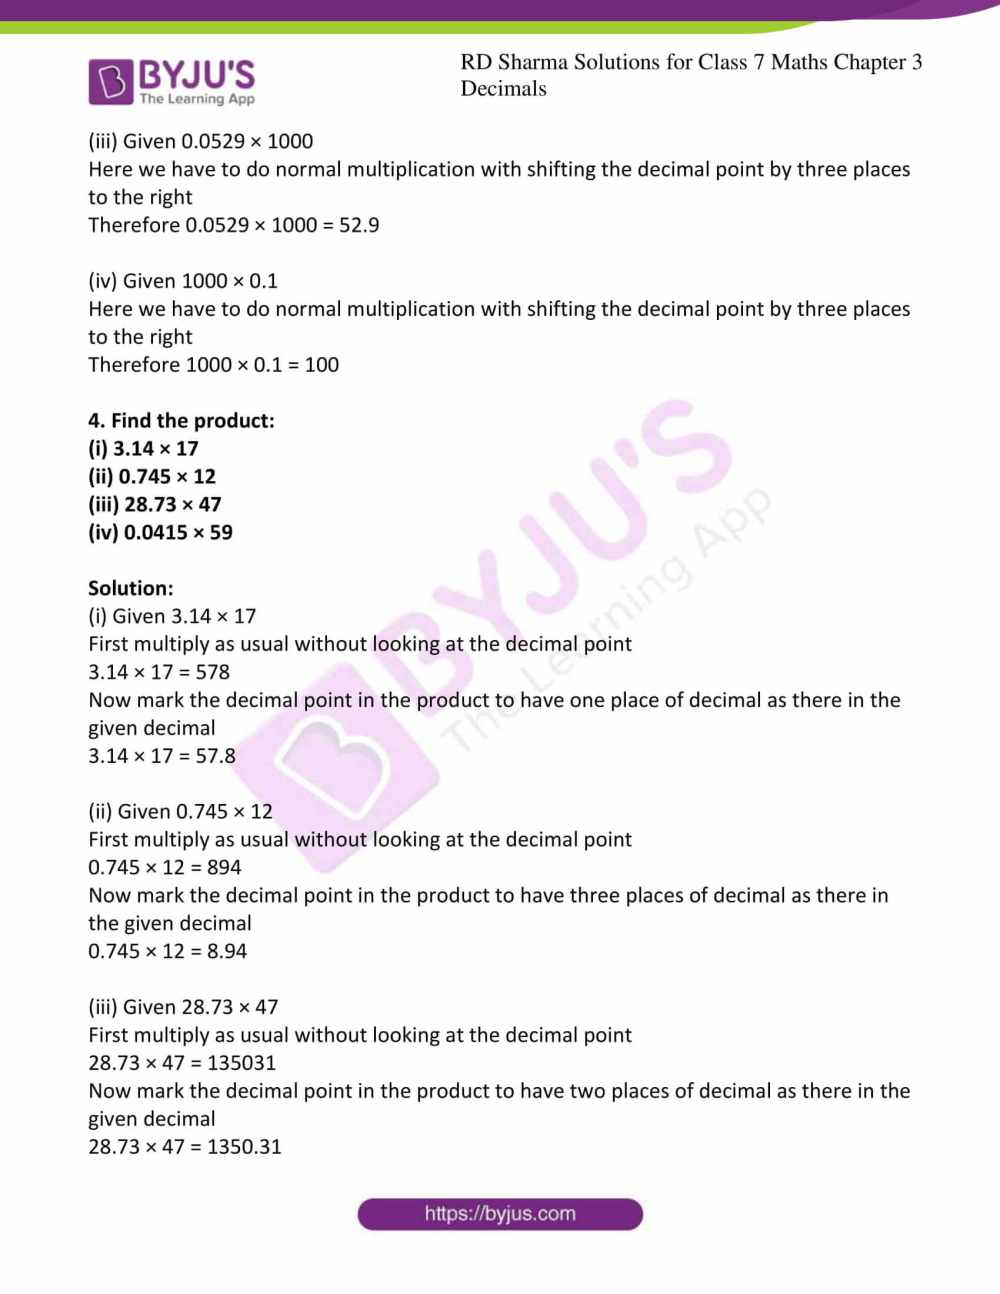 medium resolution of RD Sharma Solutions for Class 7 Maths Chapter 3 - Decimals - Avail free PDF